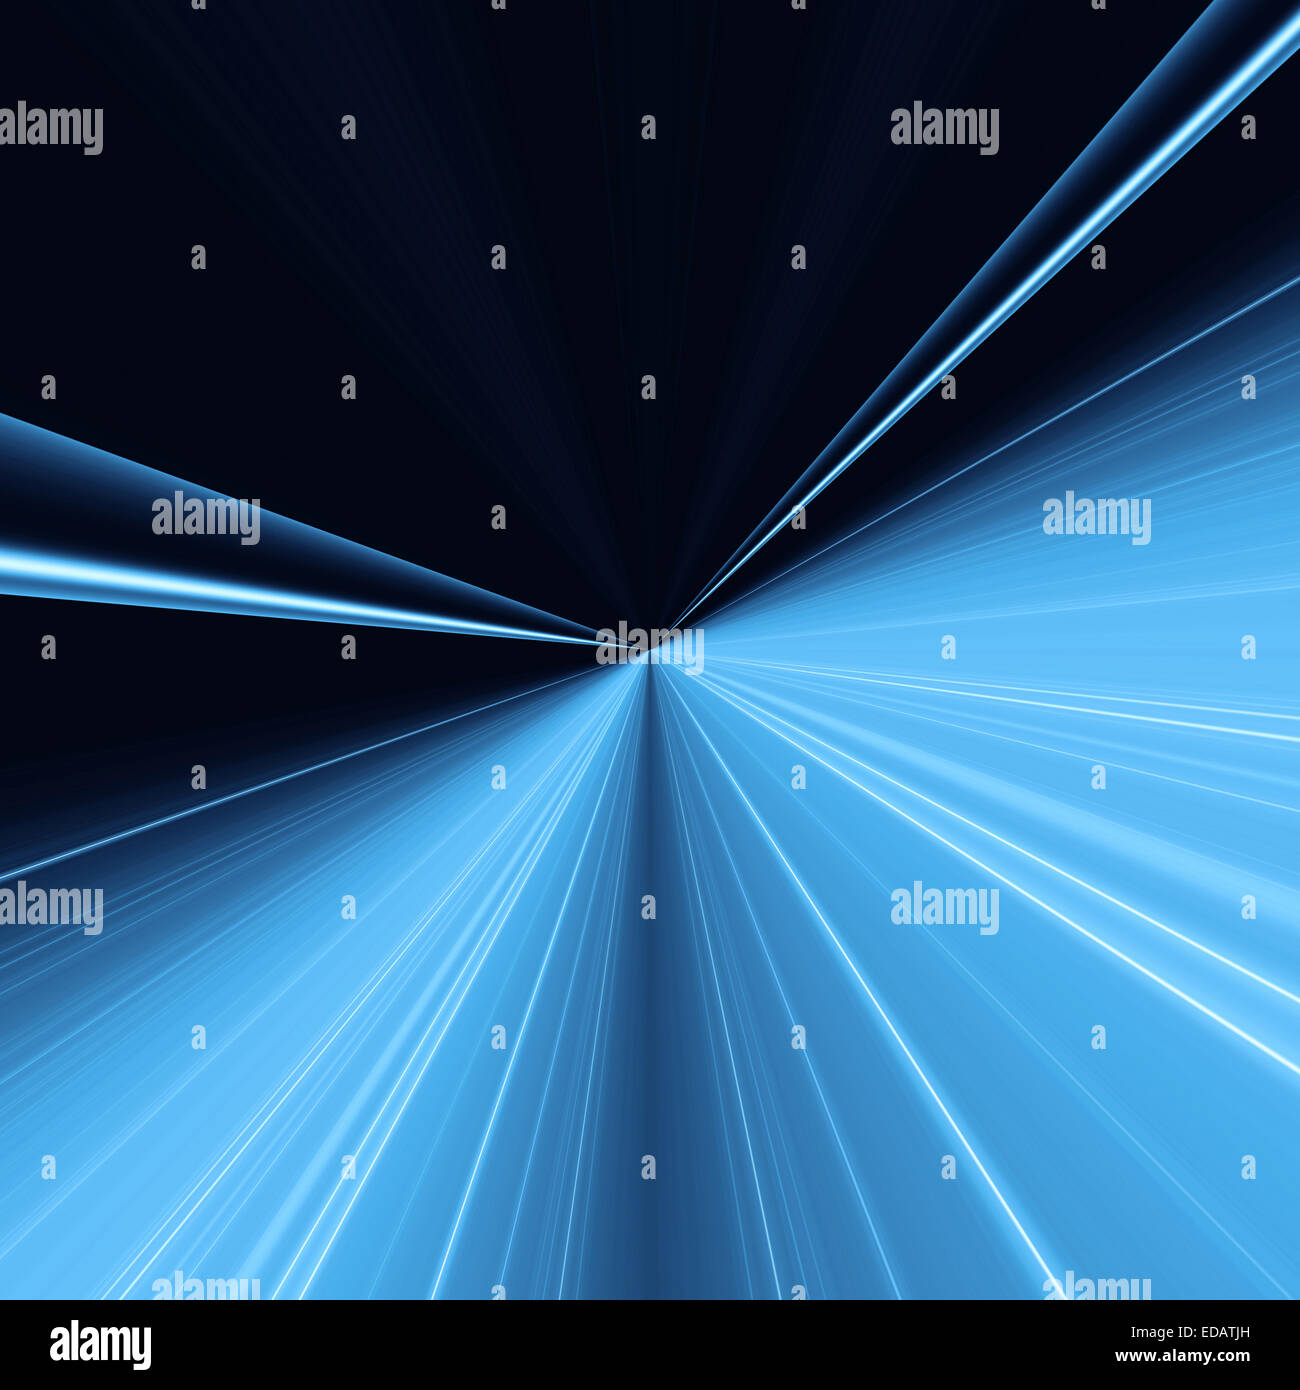 Abstract blue background with light lines concentric going into a point - Stock Image